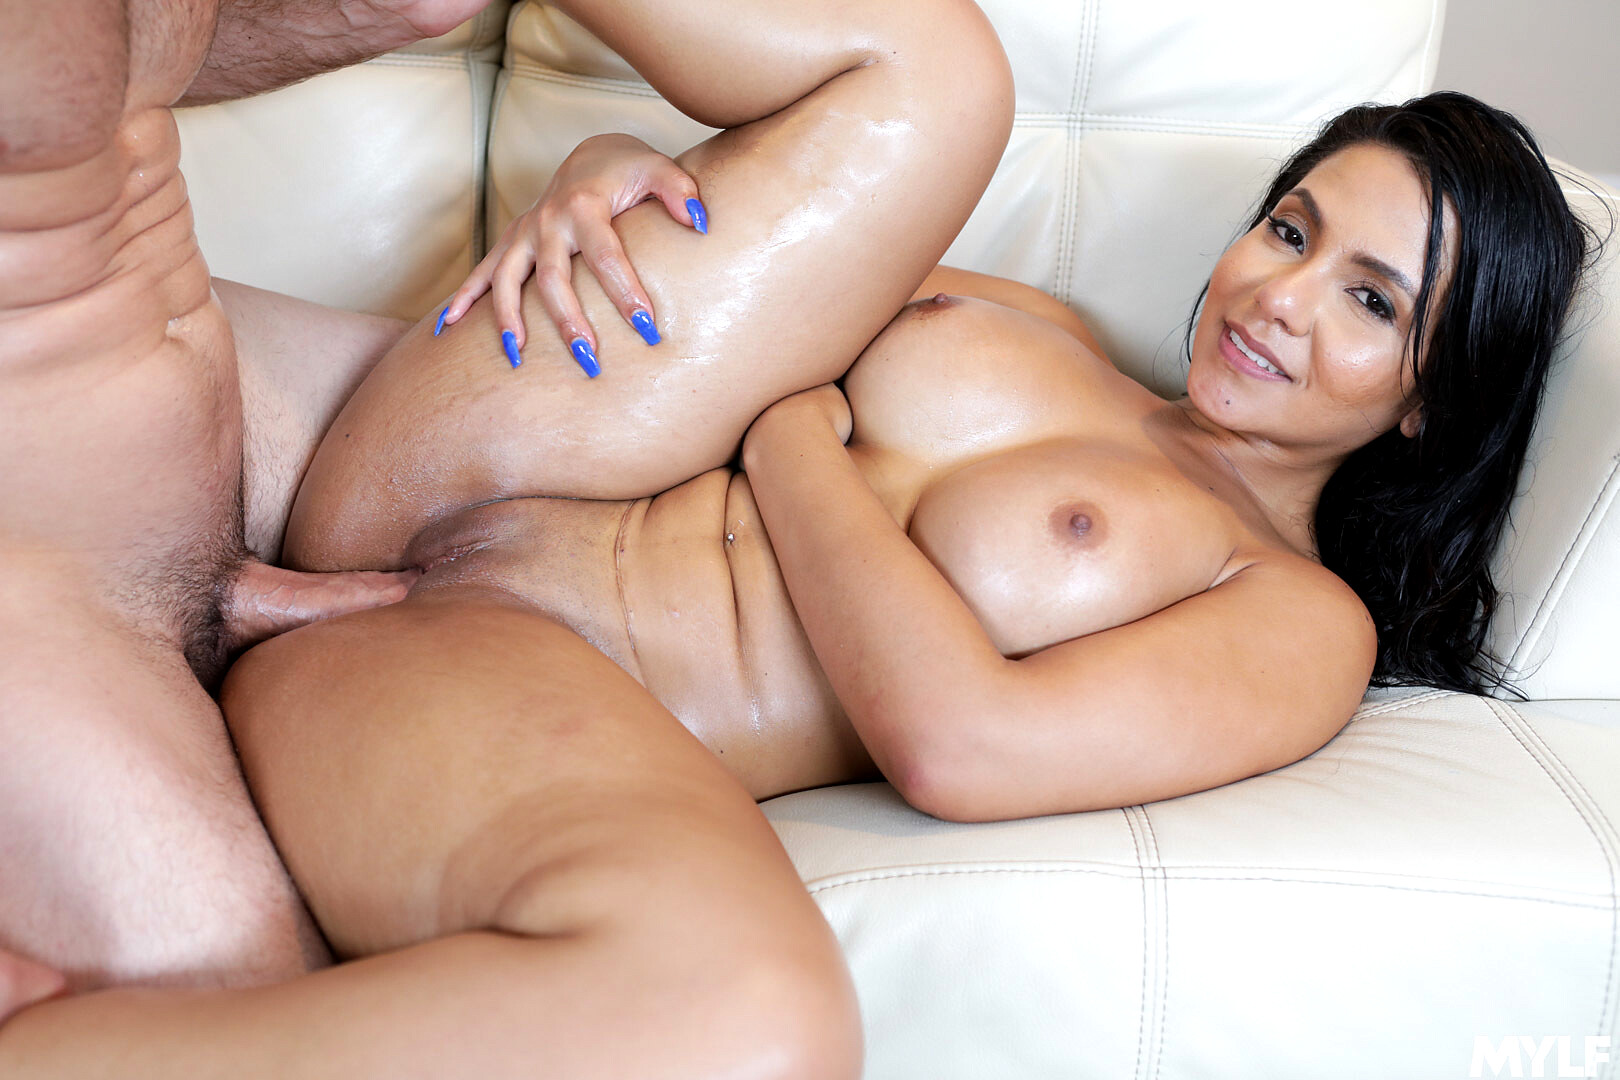 Hot latina girls fucking